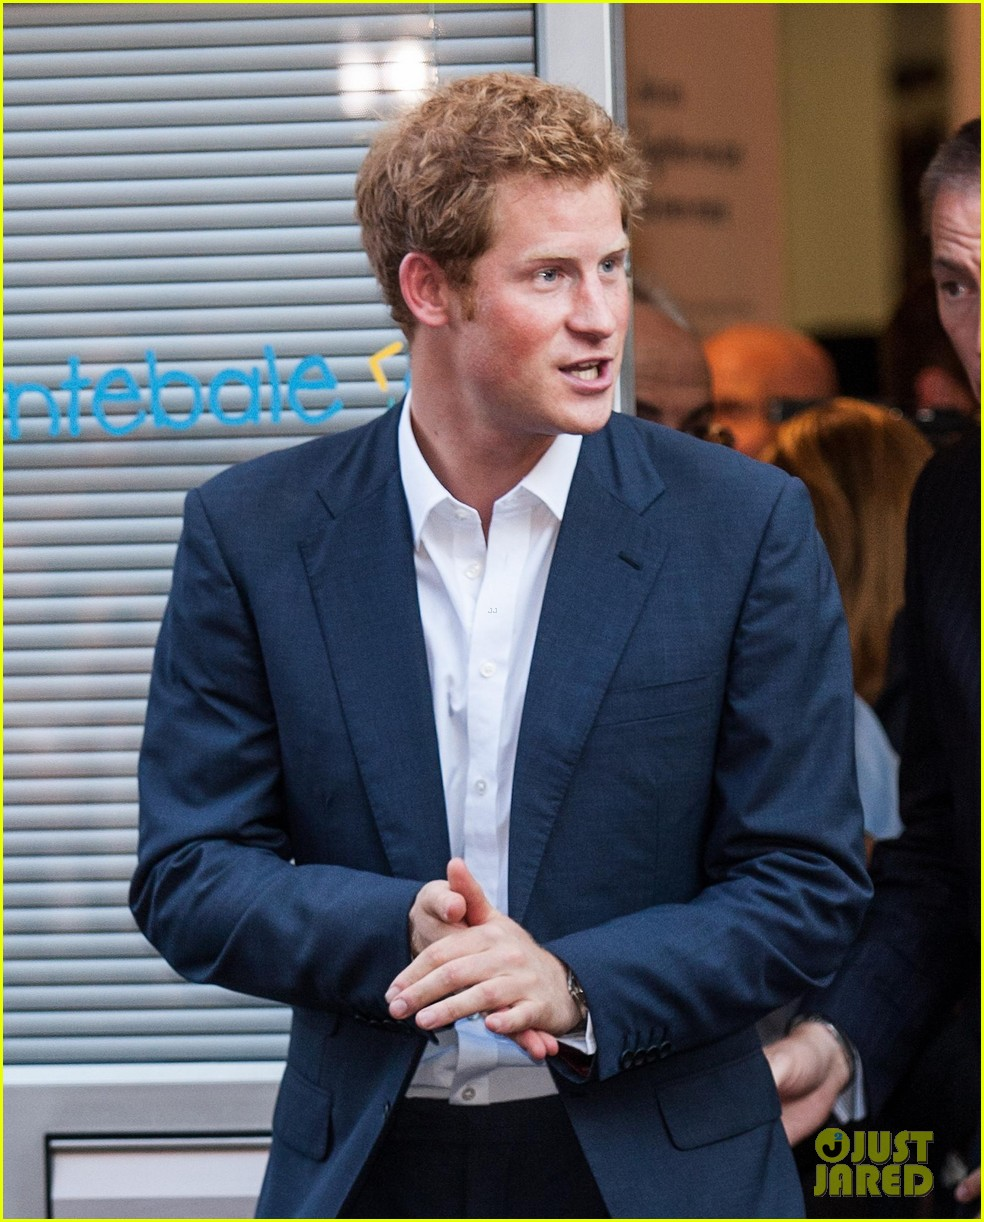 Prince Harry Steps Out After Royal Baby Prince George's